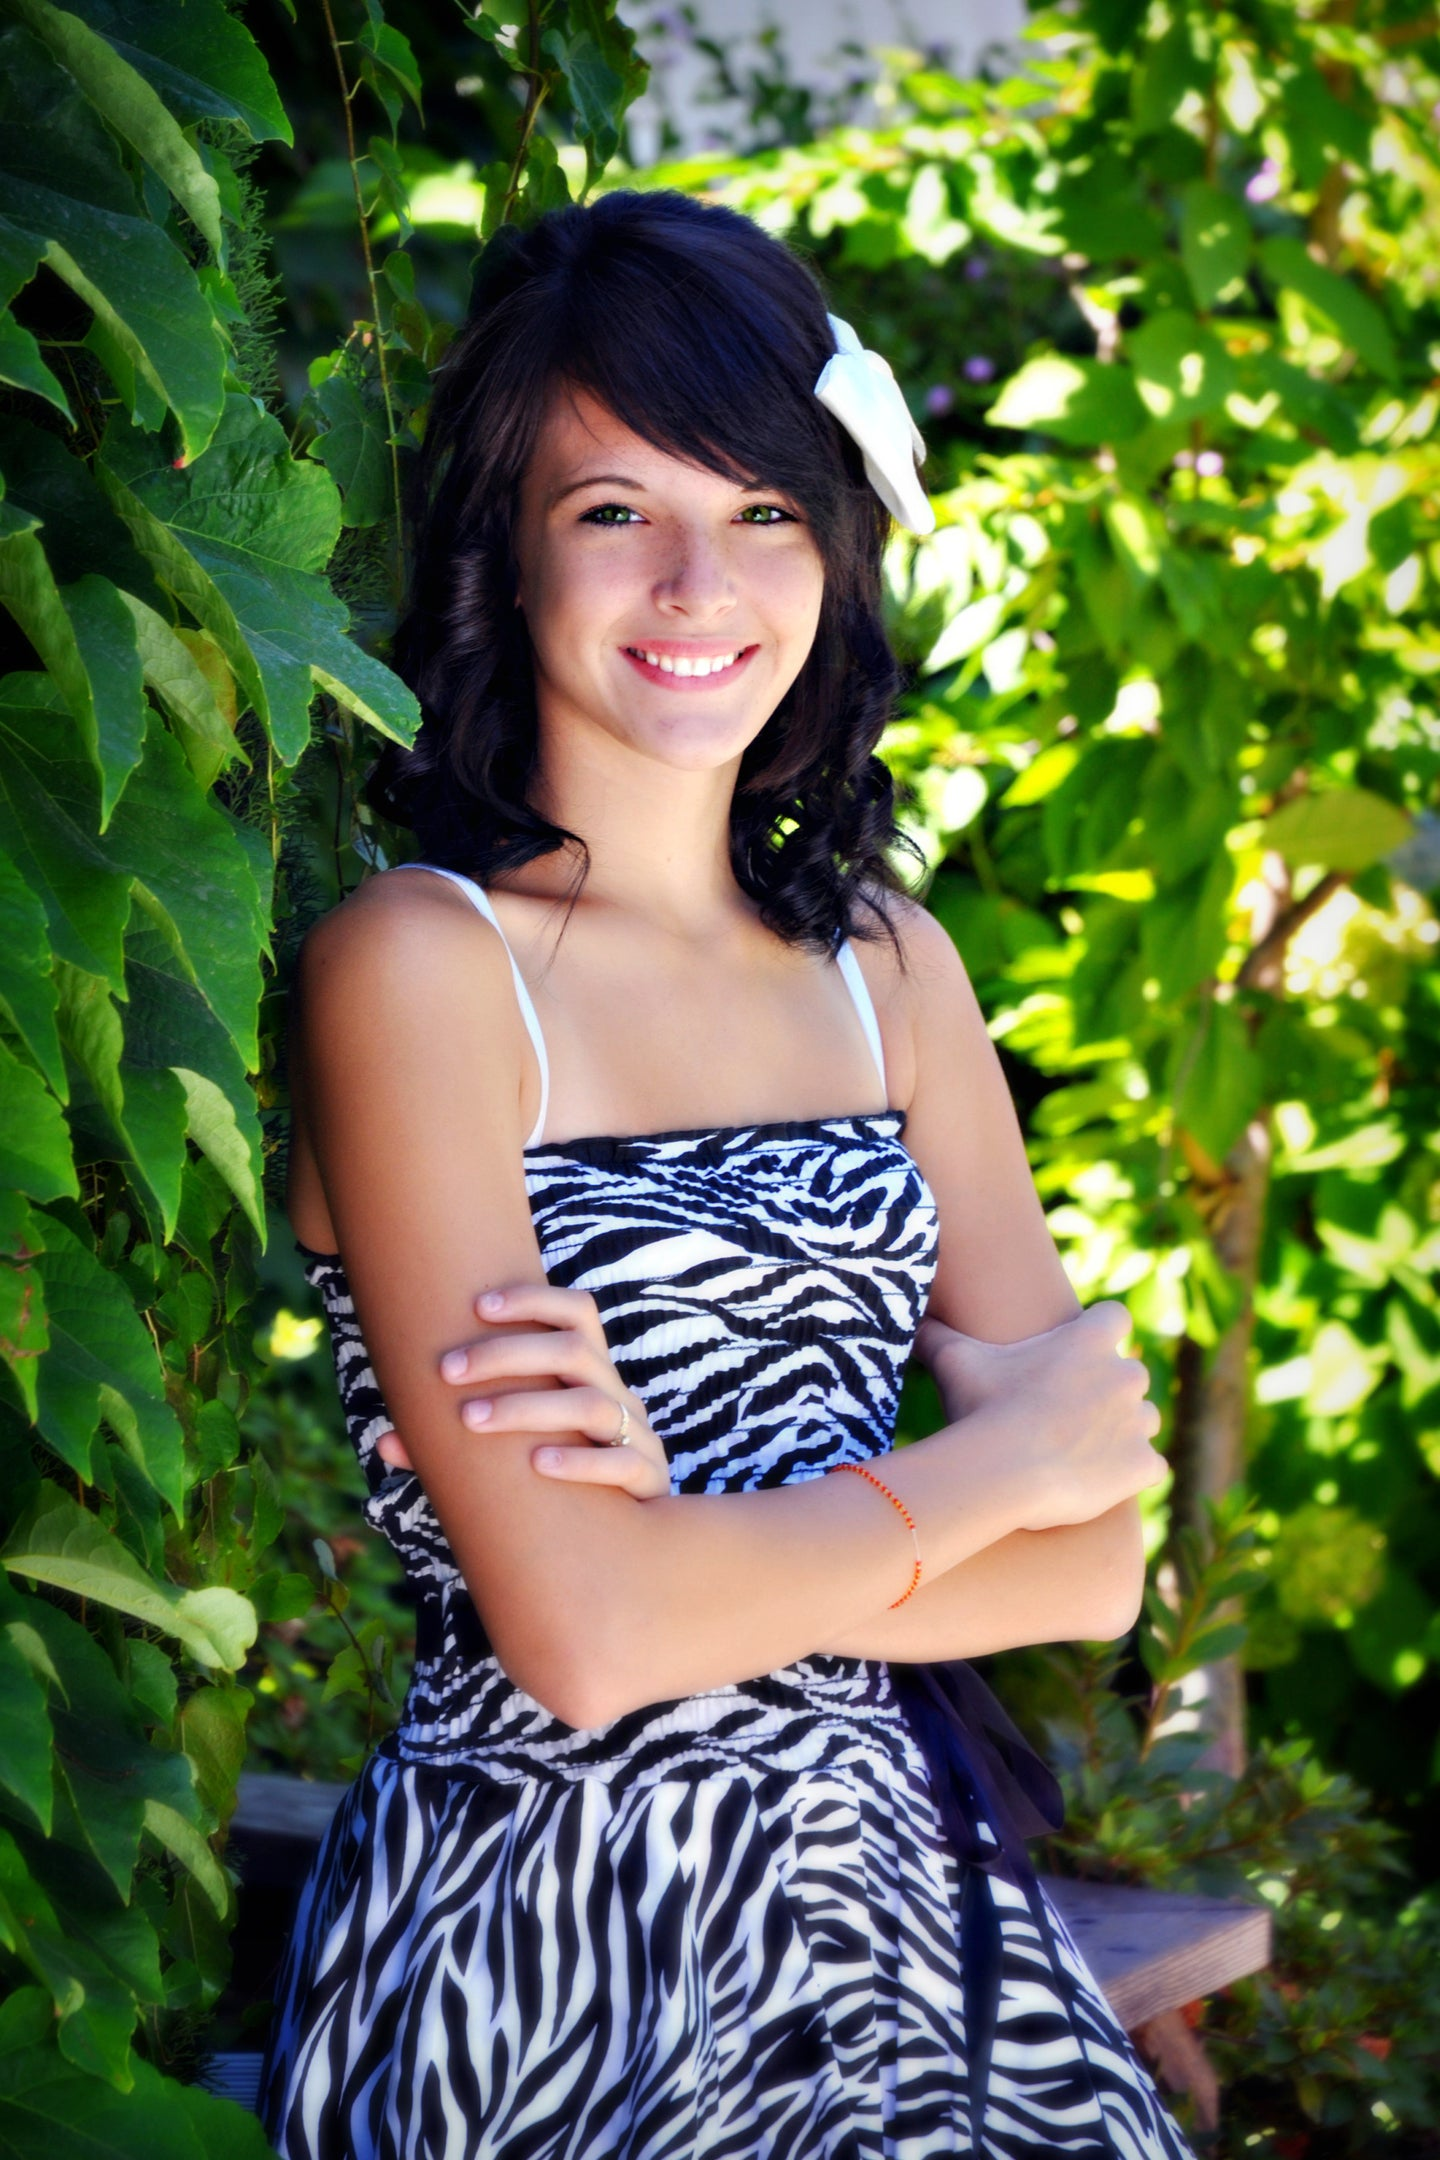 Smiling Girl with Zebra Party Dress